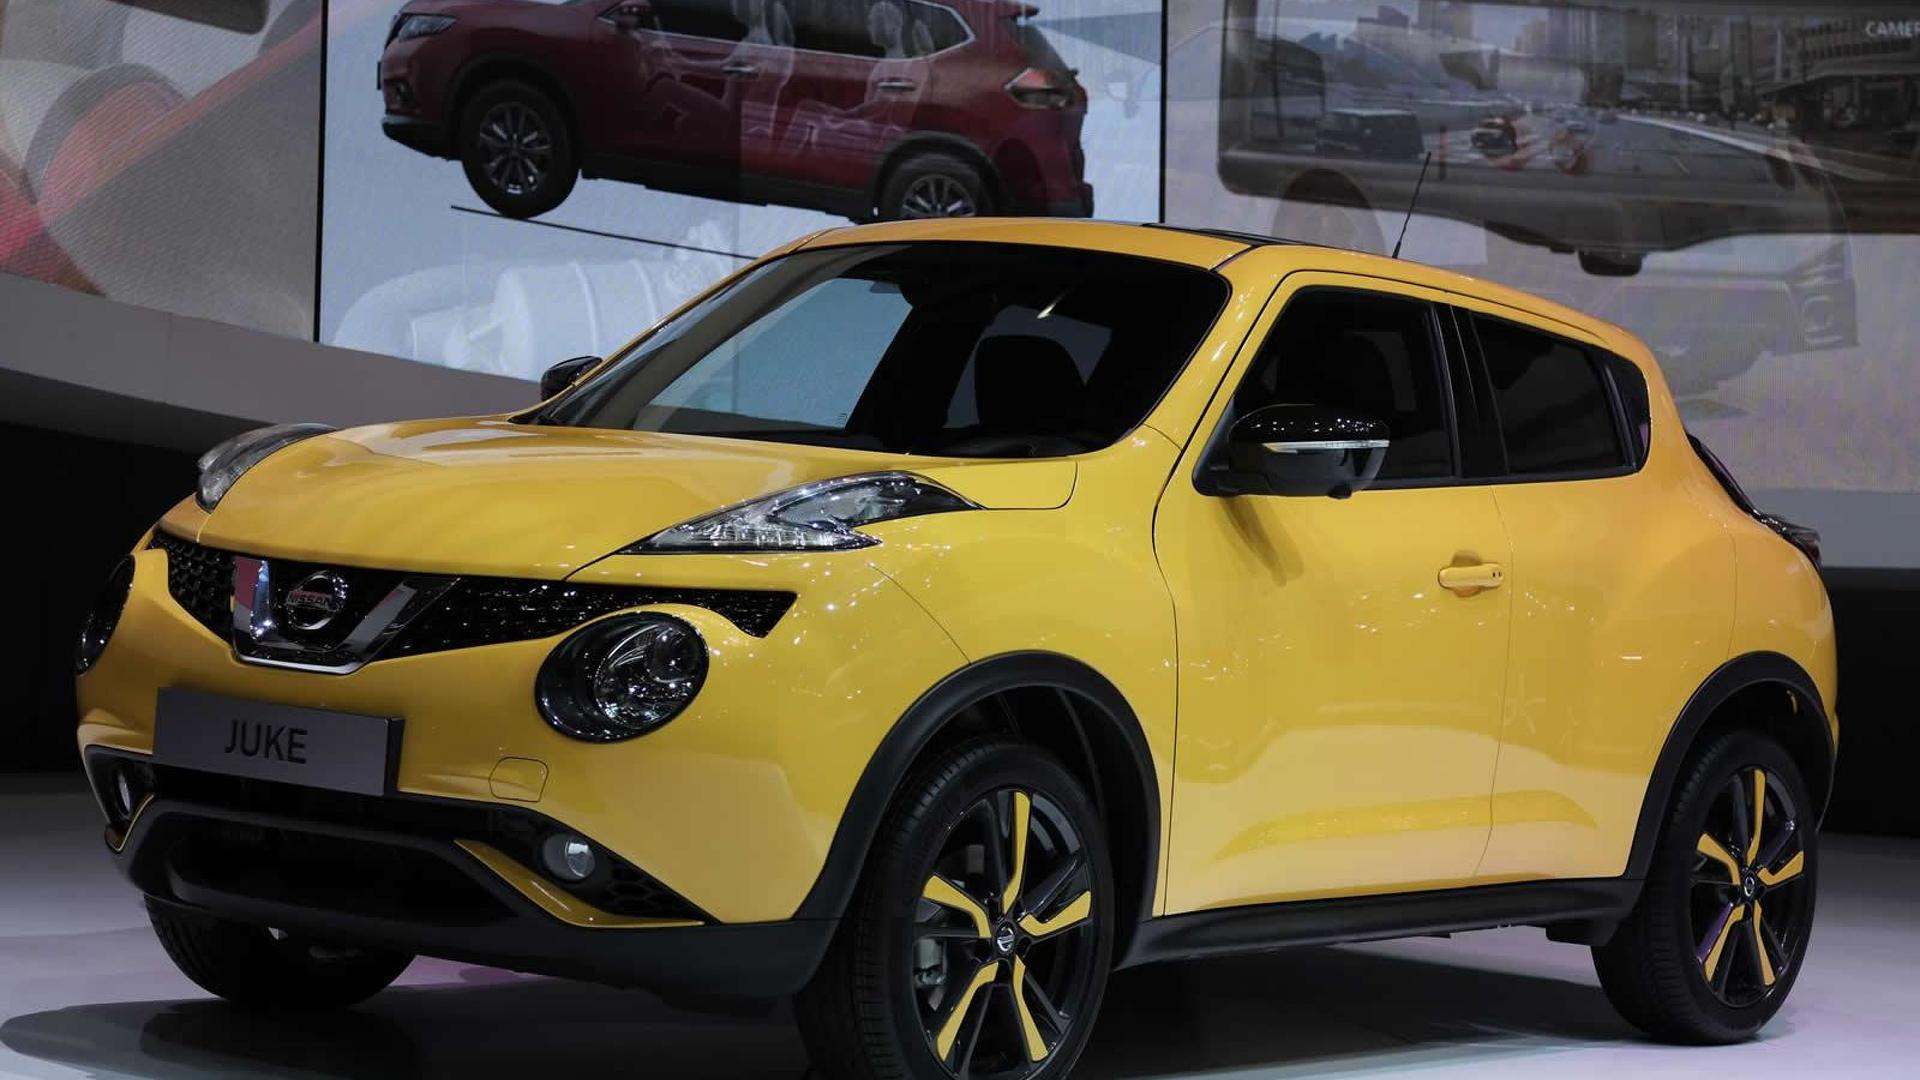 facelifted nissan juke comes to geneva with 115 hp 1 2 liter dig t engine. Black Bedroom Furniture Sets. Home Design Ideas